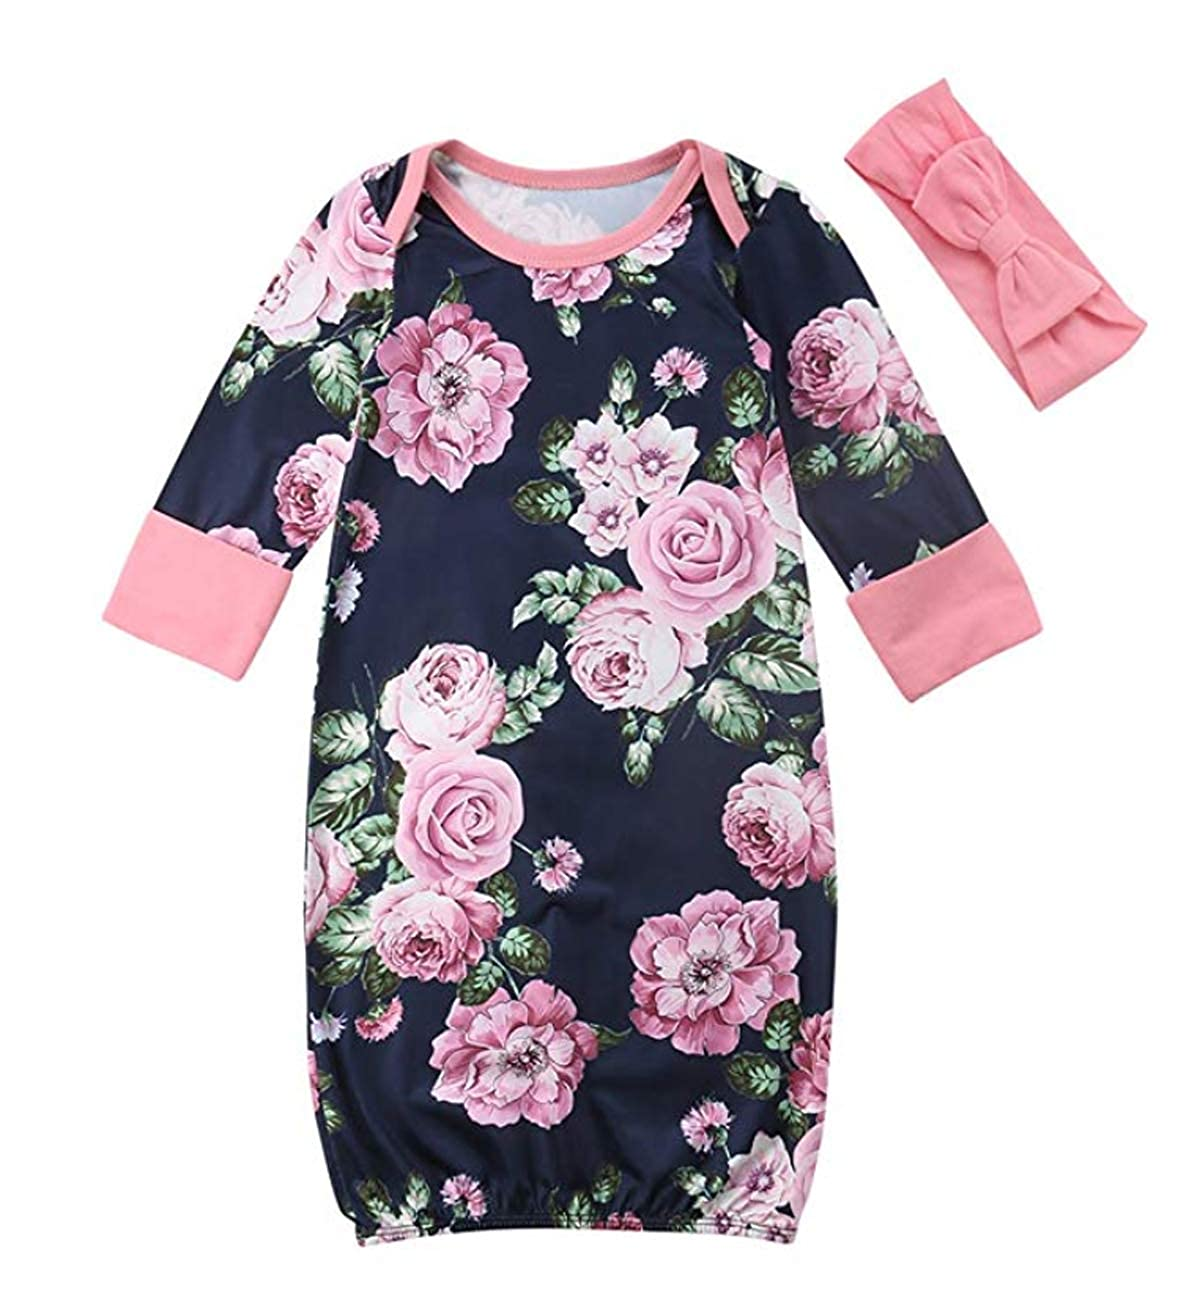 Newborn Baby Girl Sleep Gown Floral Print Swaddle Sack Coming Home Outfit+Headband